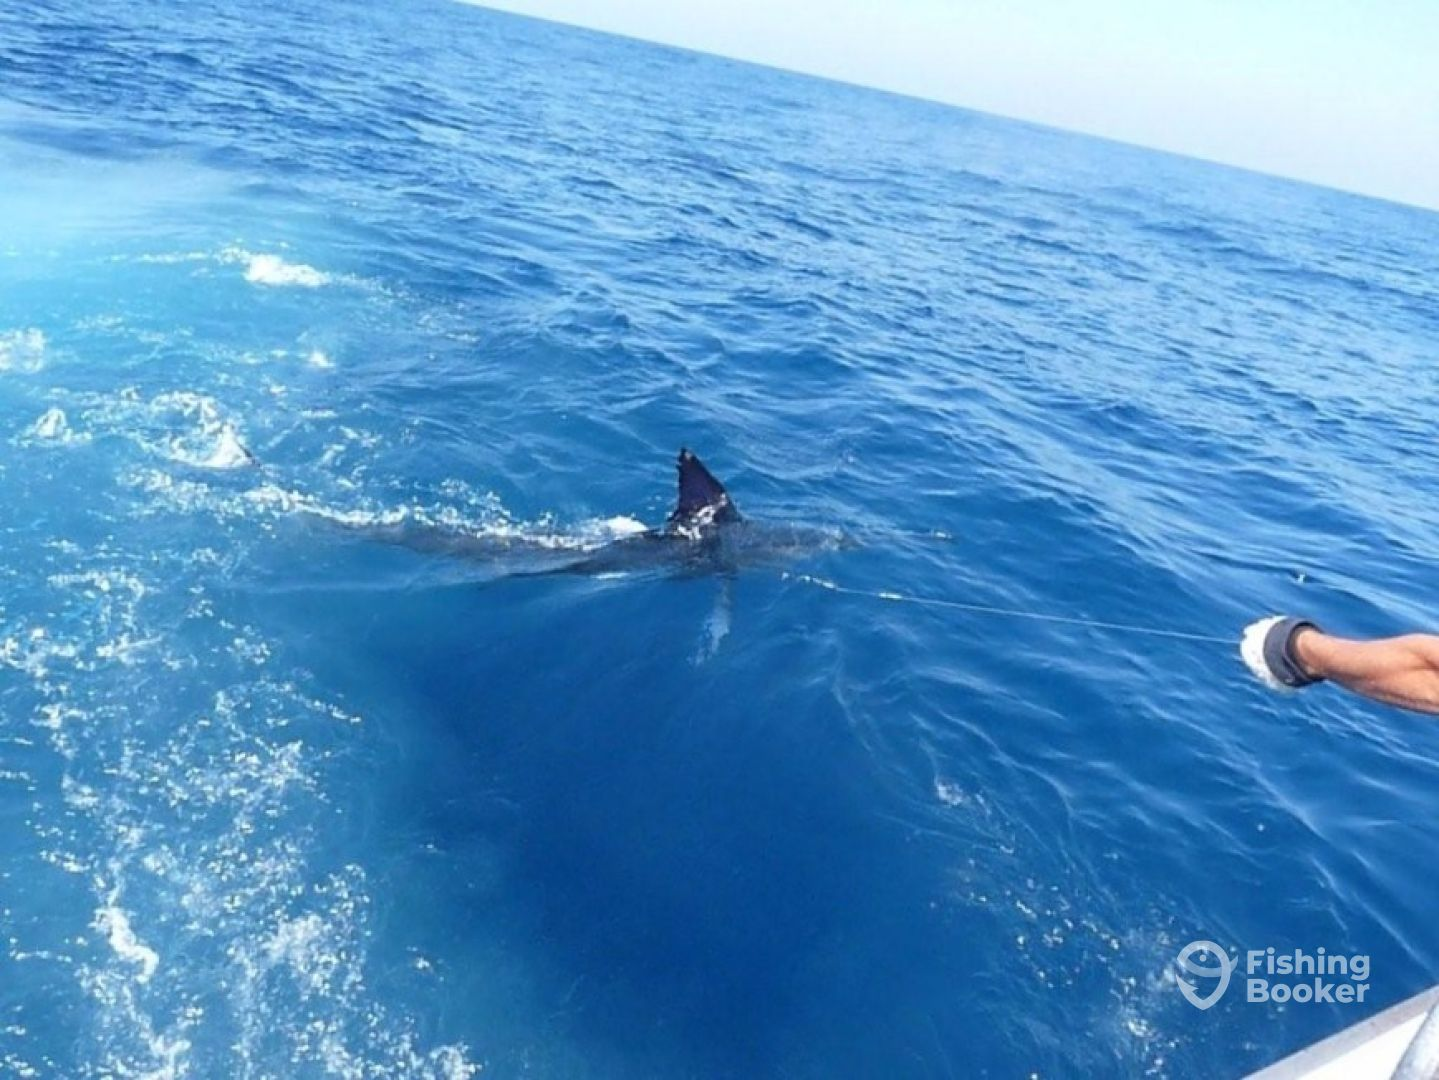 70 kg striped marlin